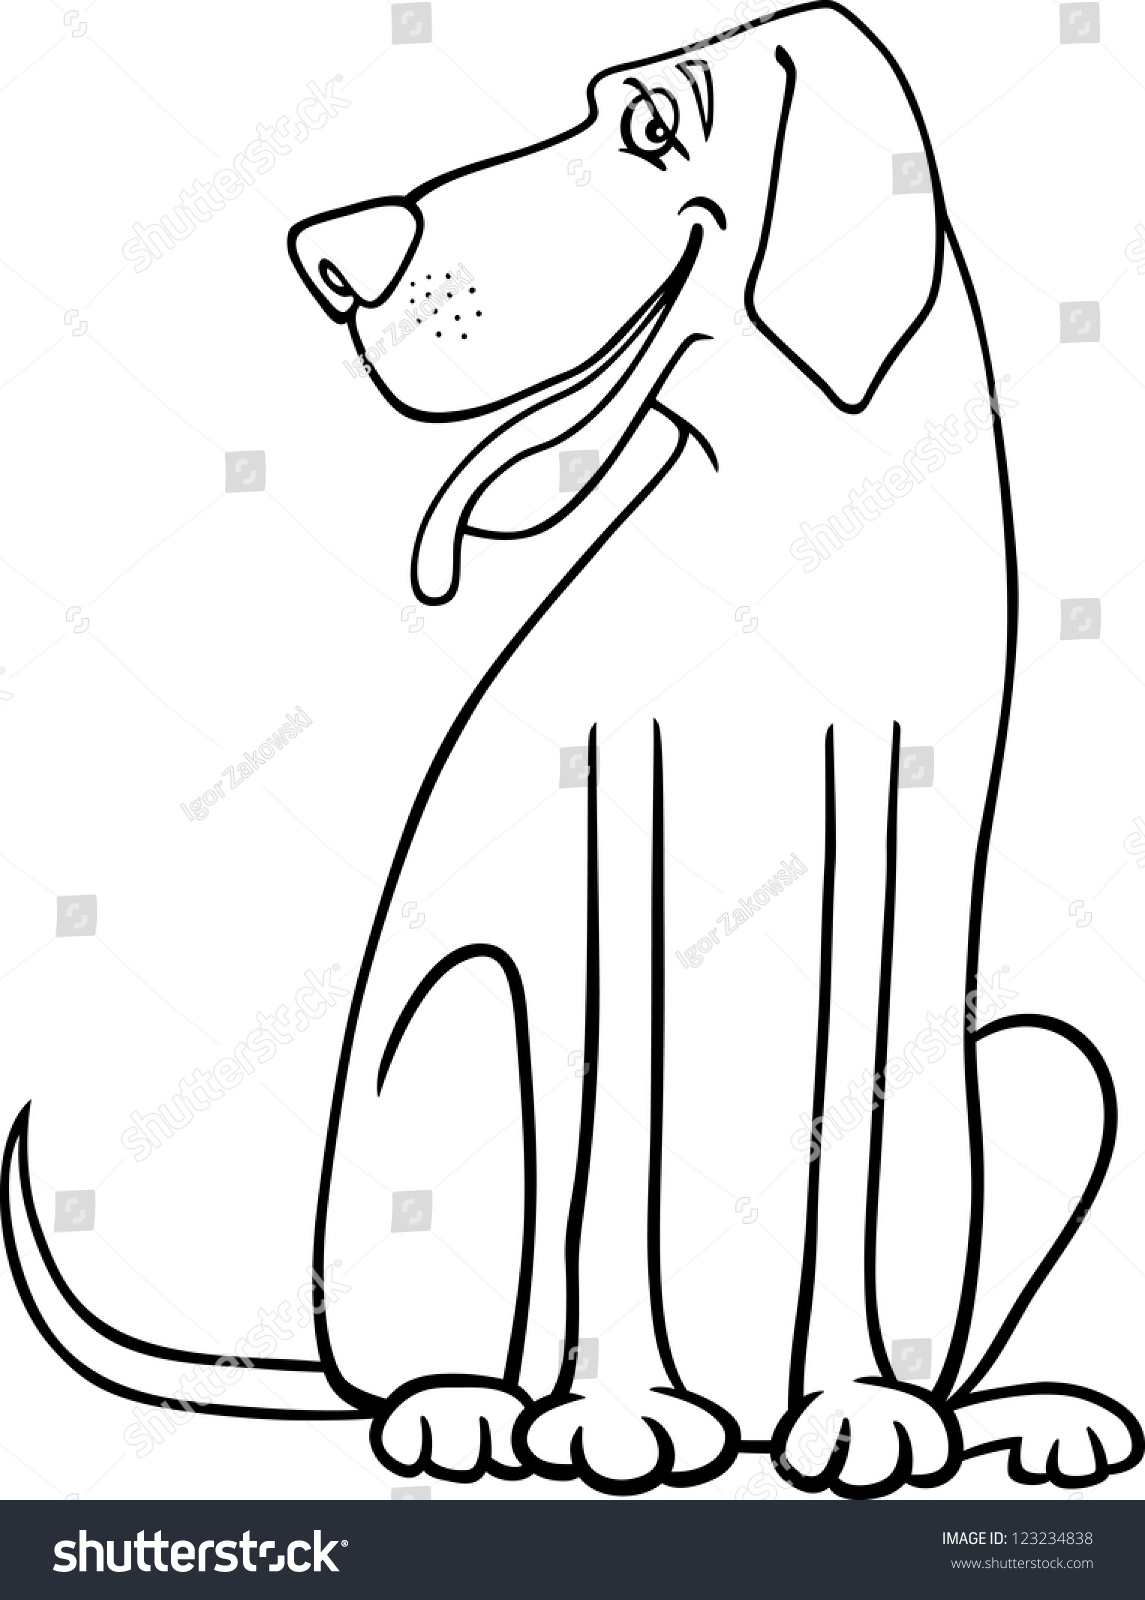 great dane dog for coloring book or coloring page preview save to a lightbox